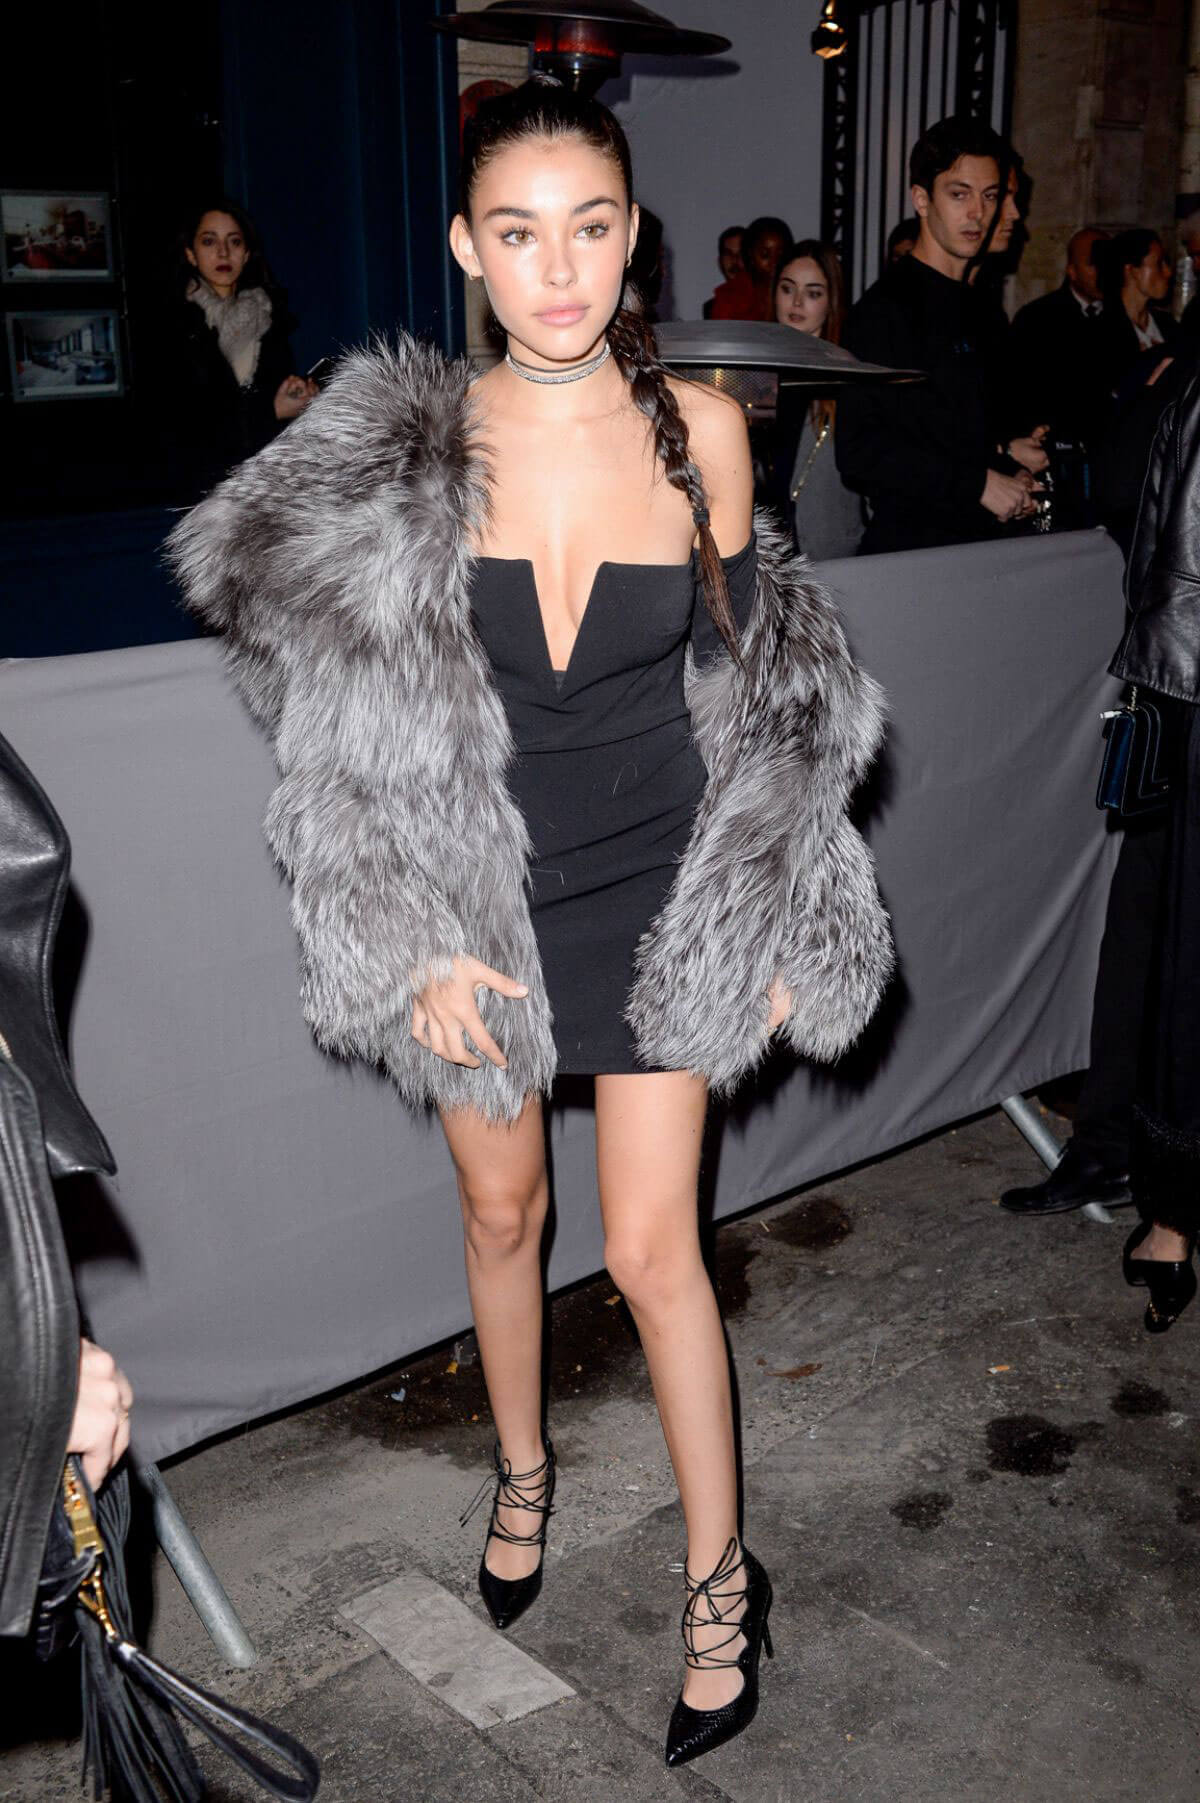 Madison Beer Stills at Christian Dior Party in Paris 7